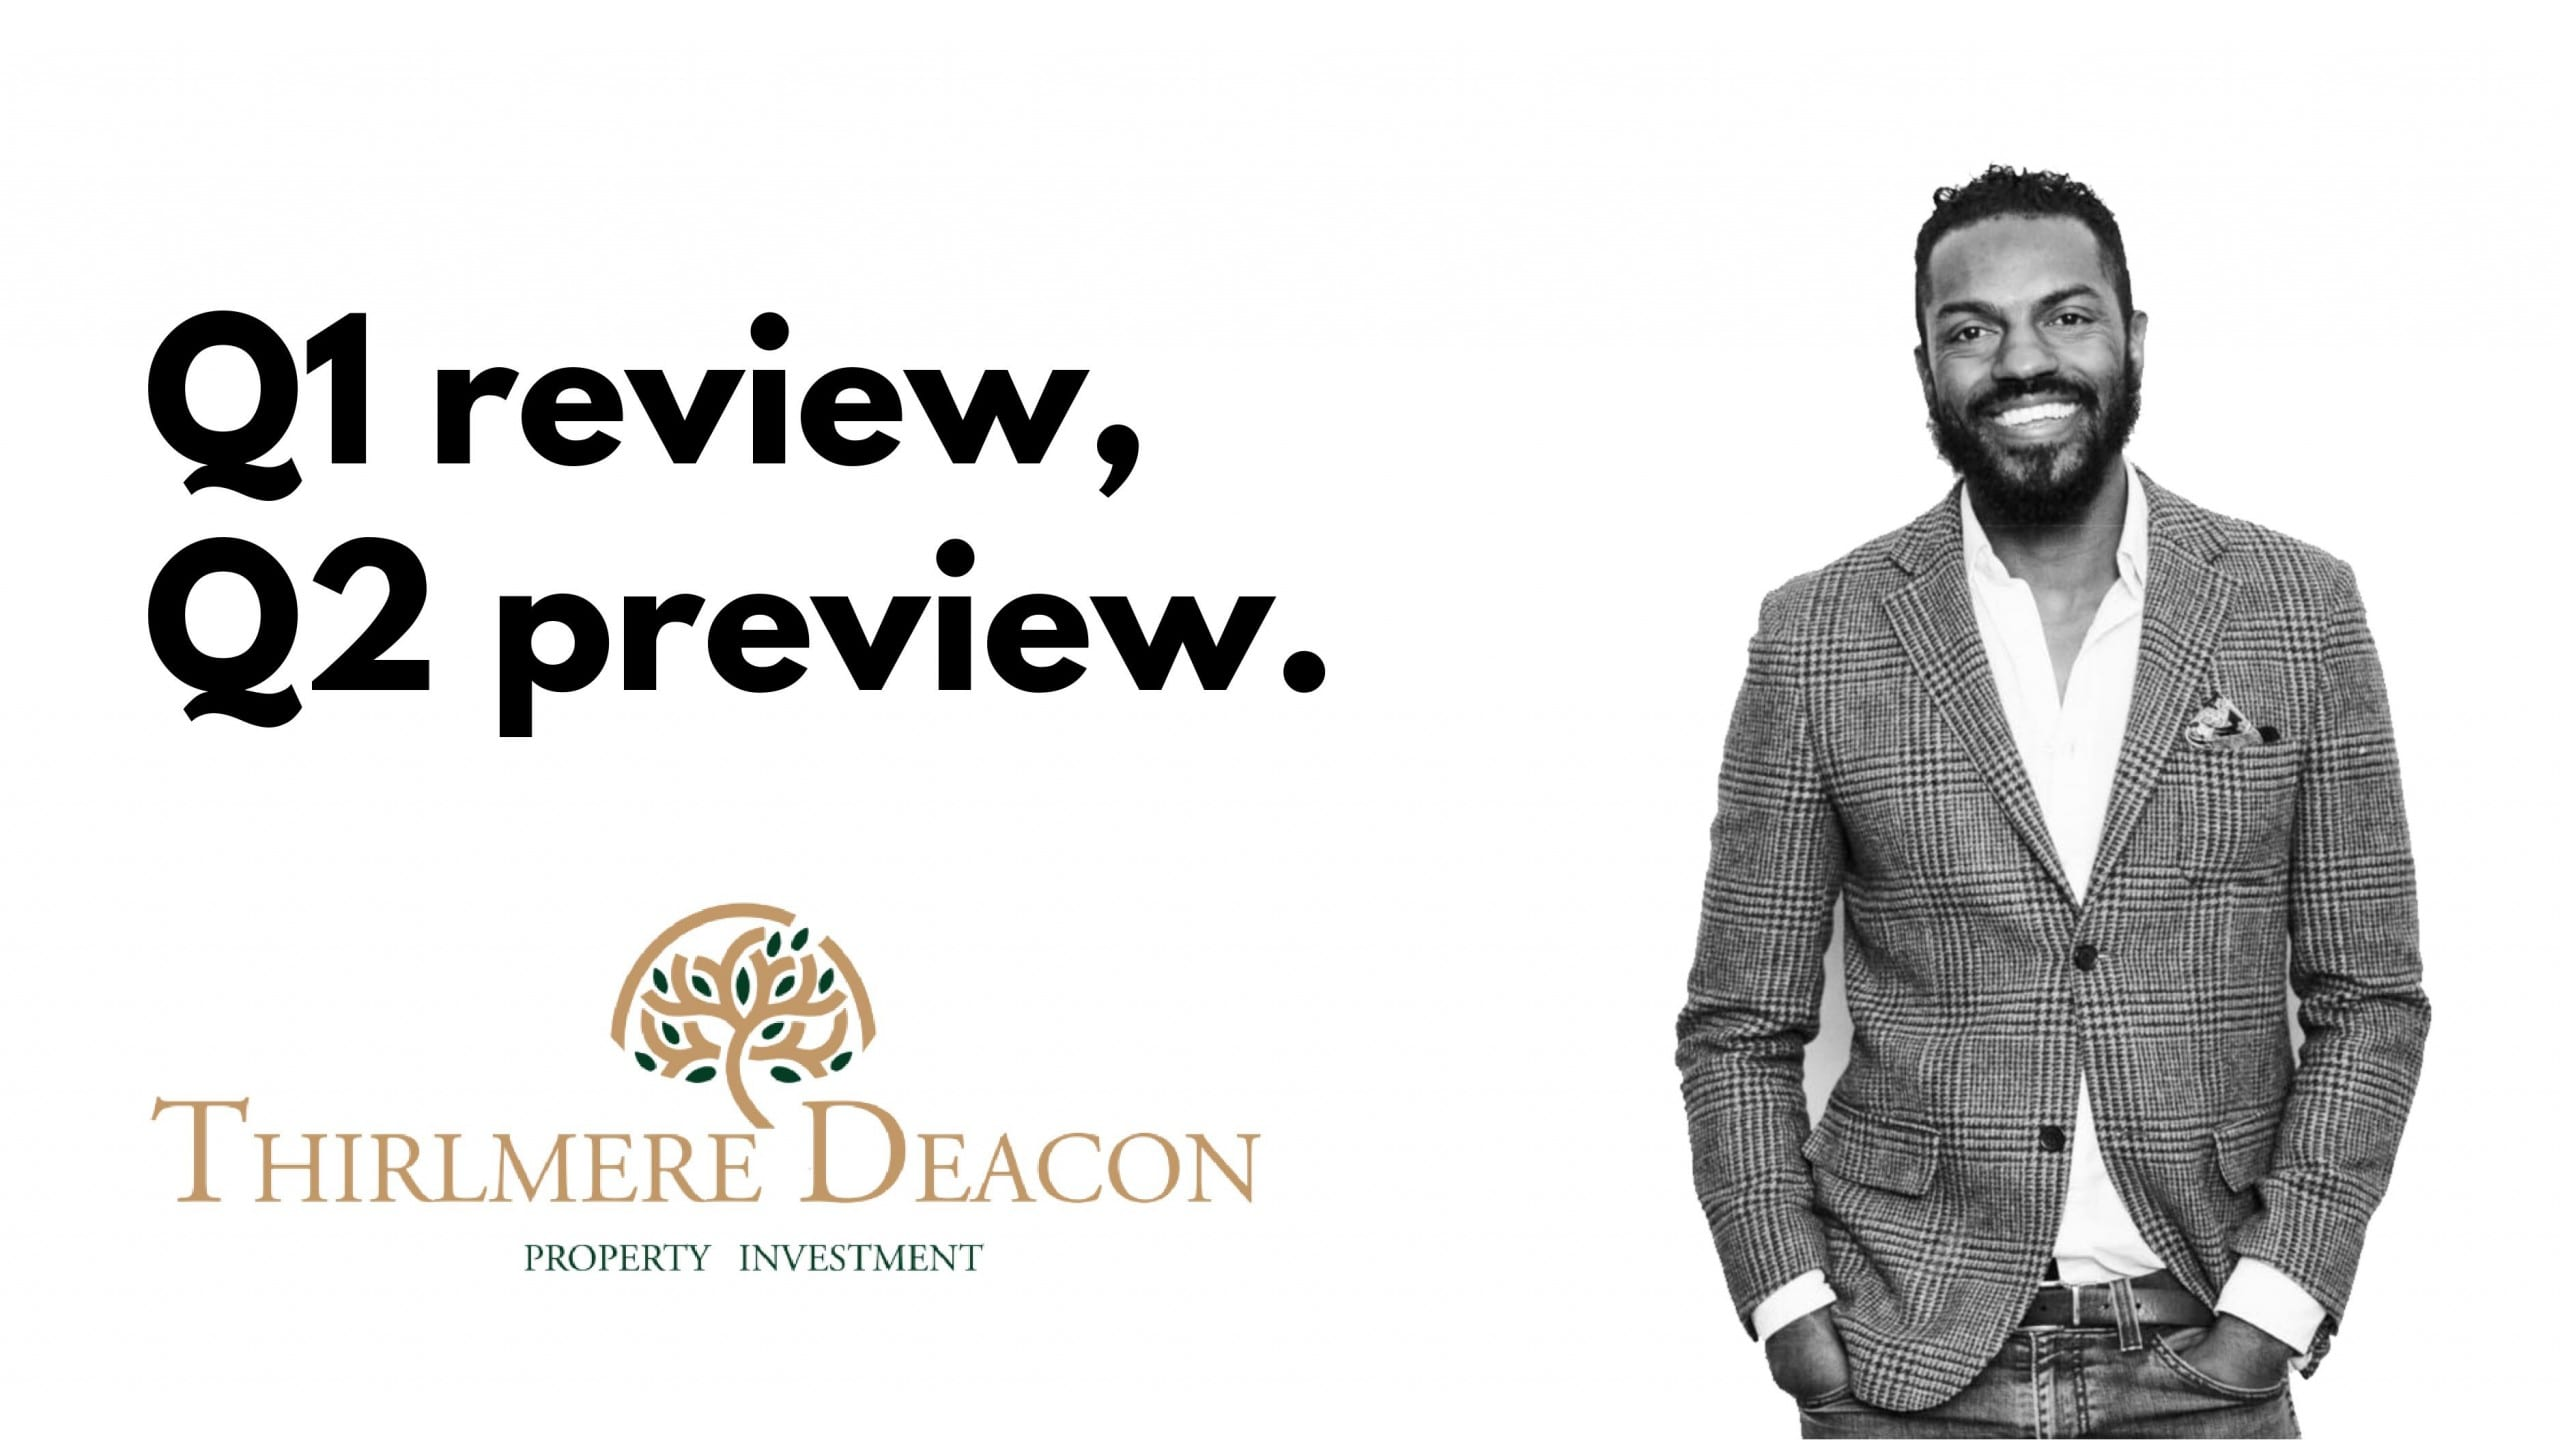 Q1 Q2 reviewa nd preview thirlmere Deacon property invest